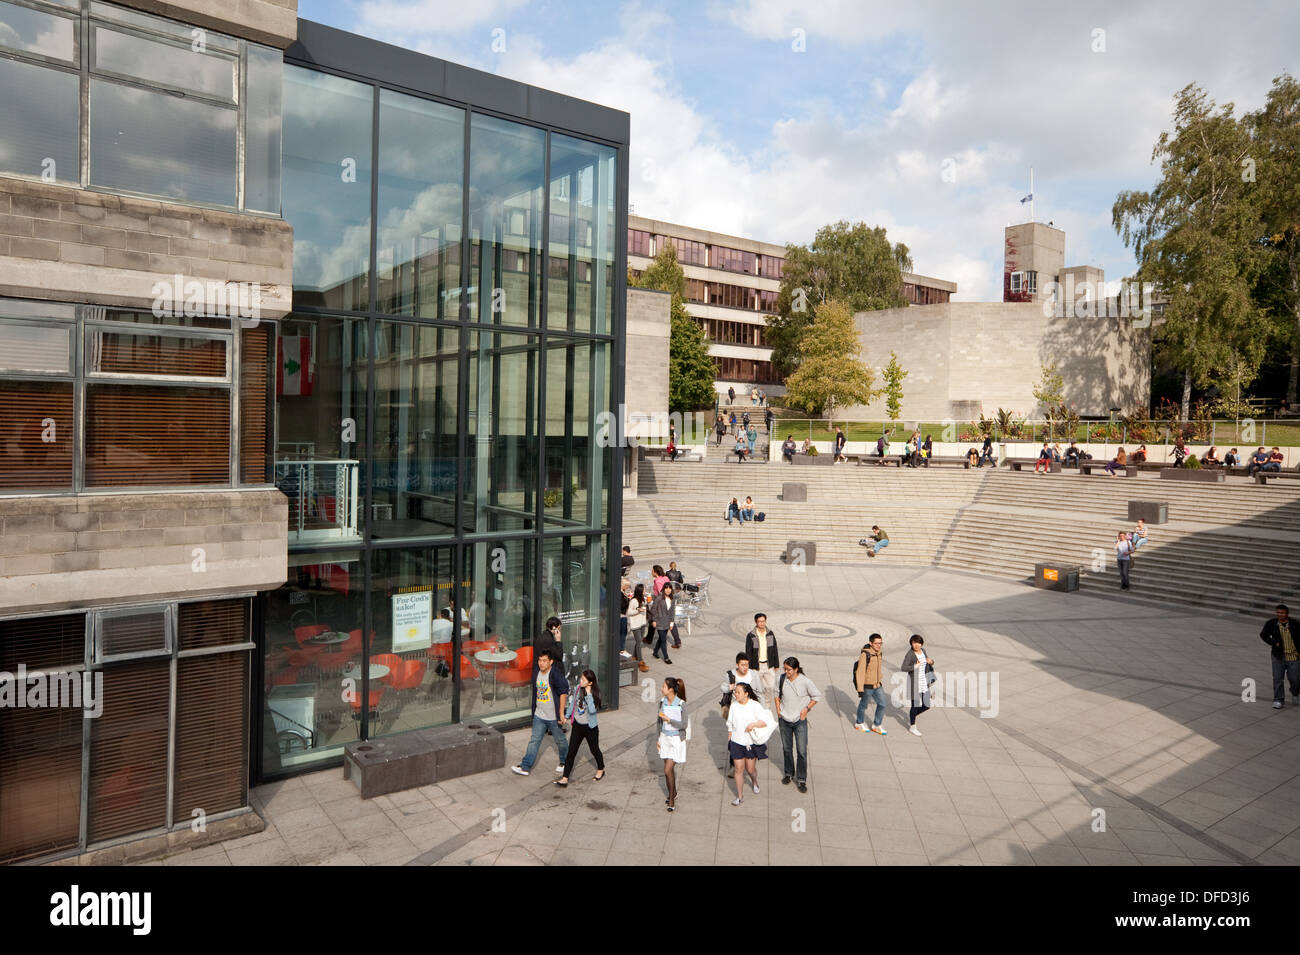 Image result for East Anglia university school of education